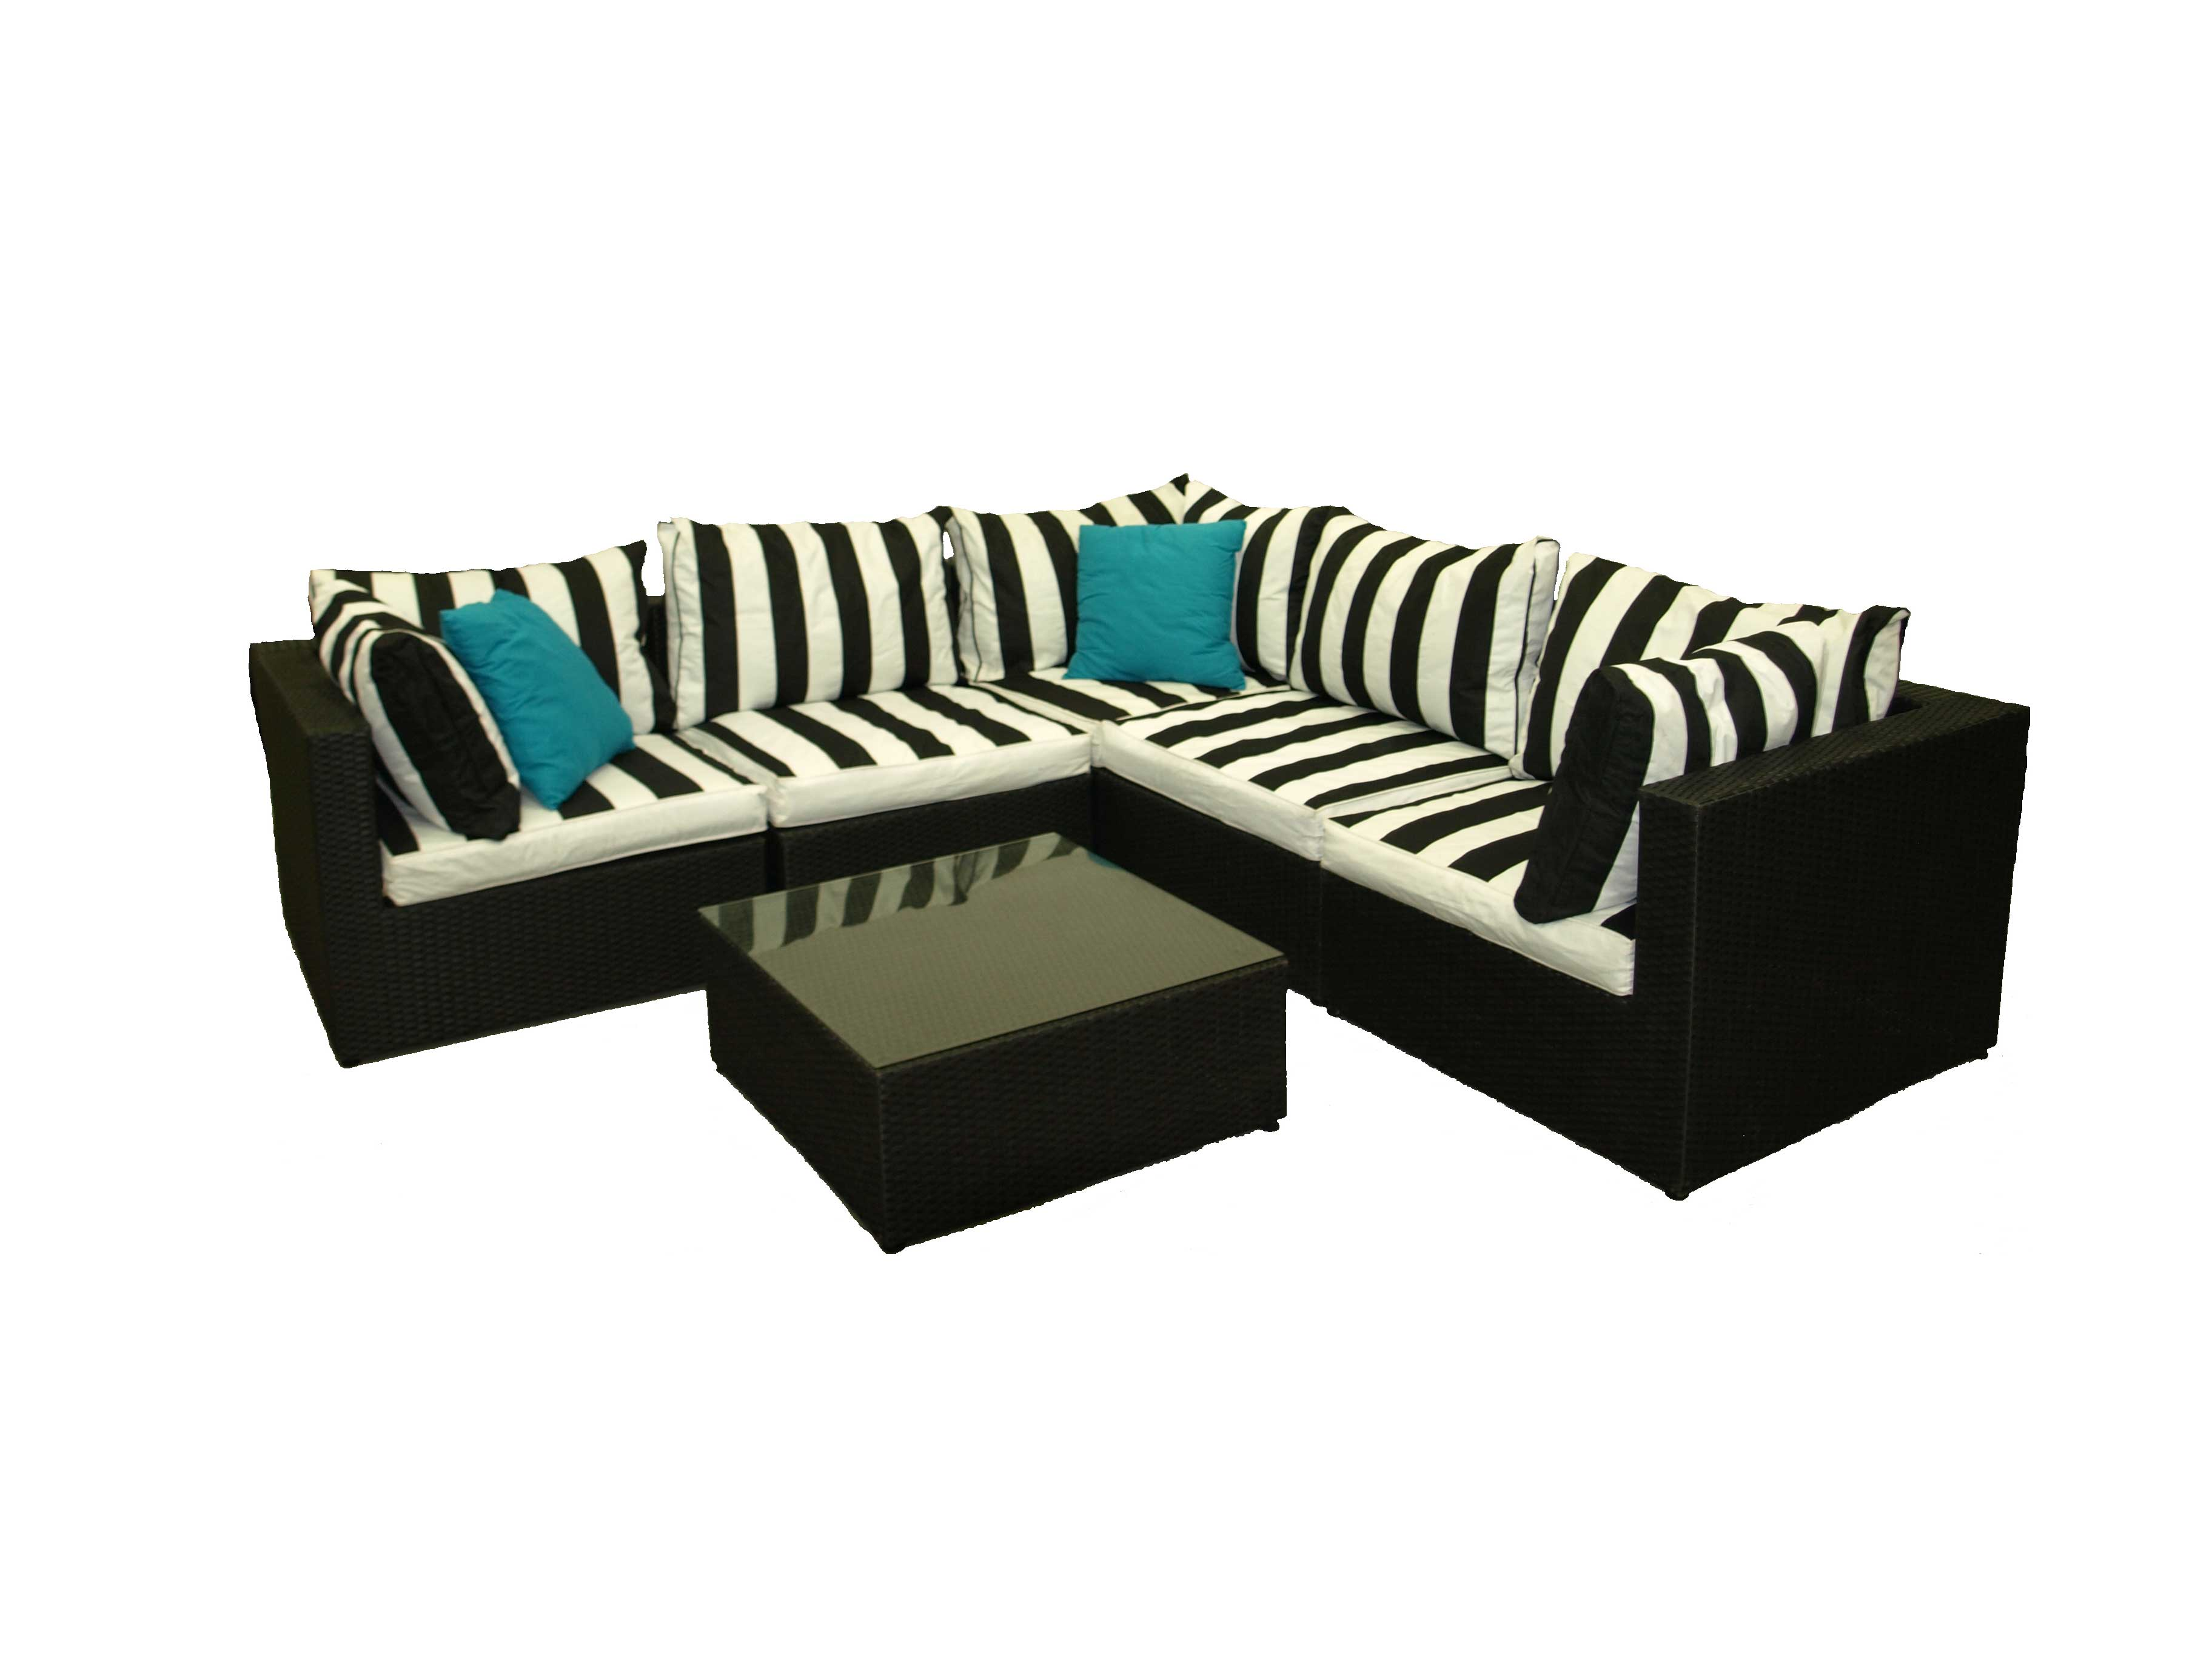 2pc-Wicker-Lounge-Black-&-White-Stripe-$275